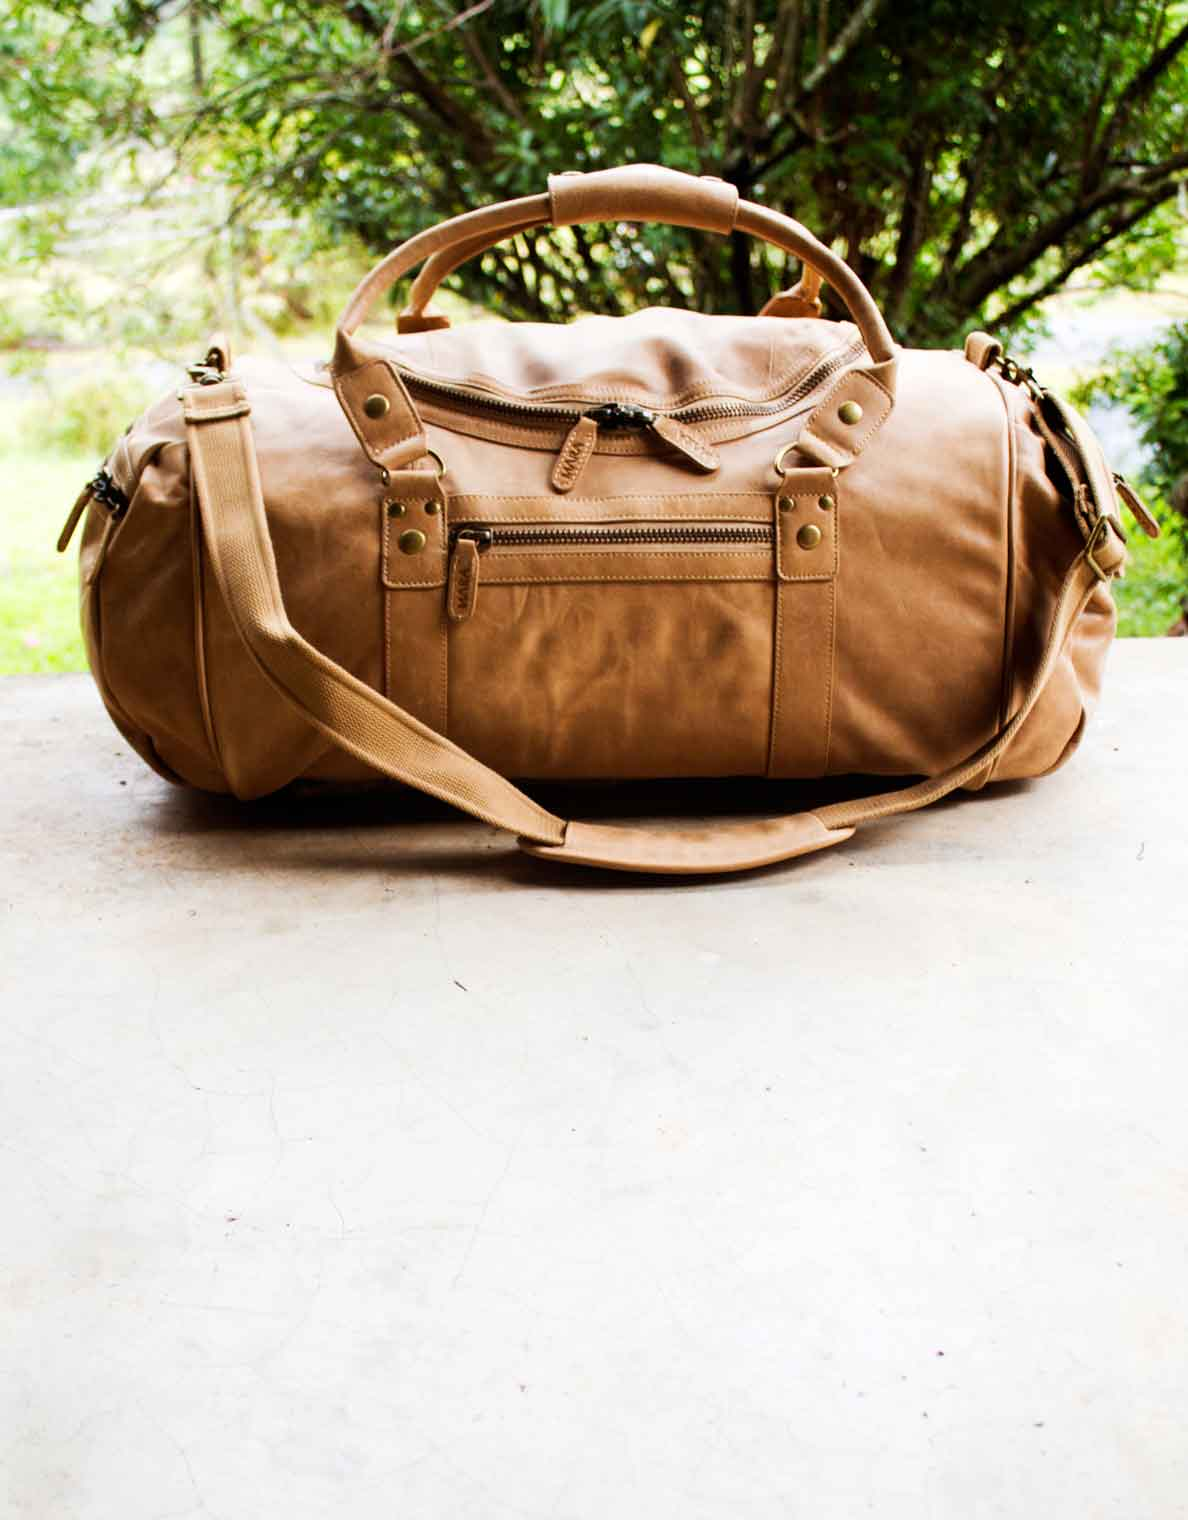 Quintessential Leather Duffel Bag Protector by The Safari Store